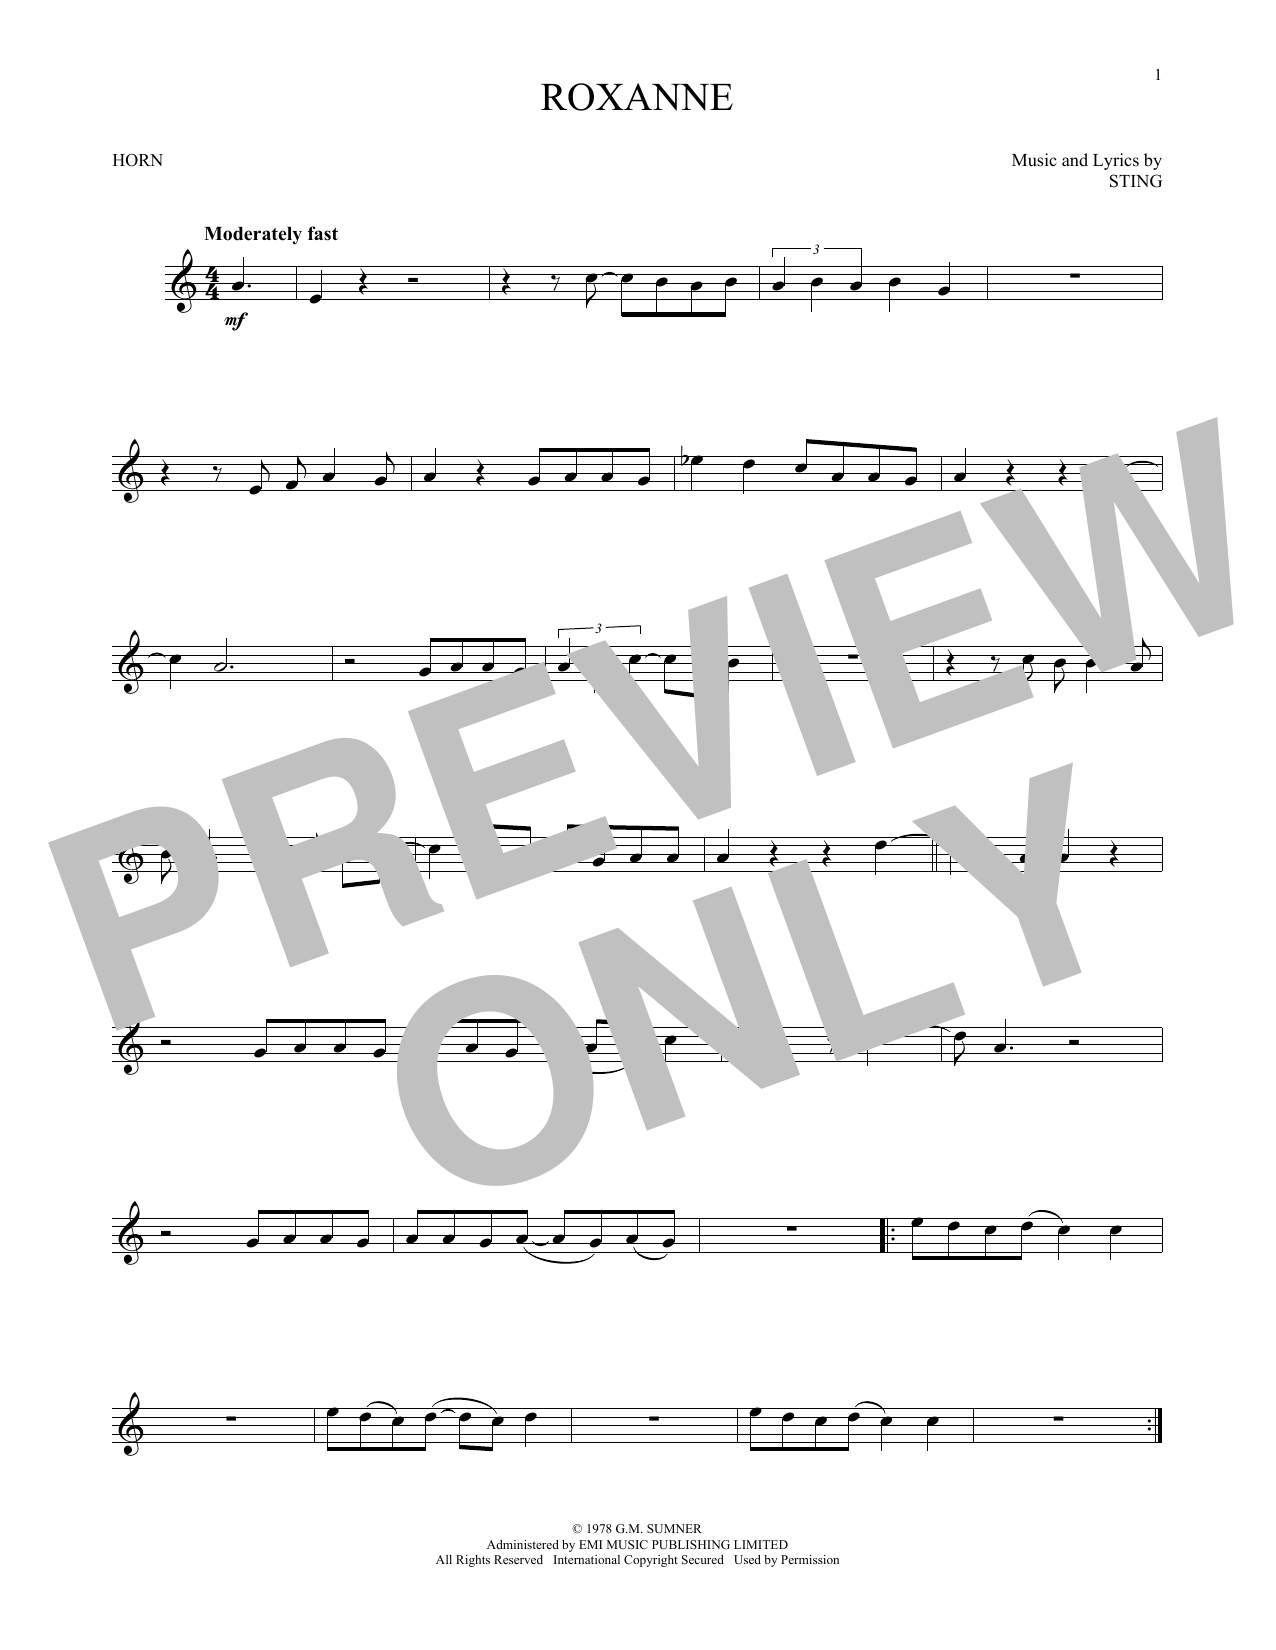 Roxanne (French Horn Solo)